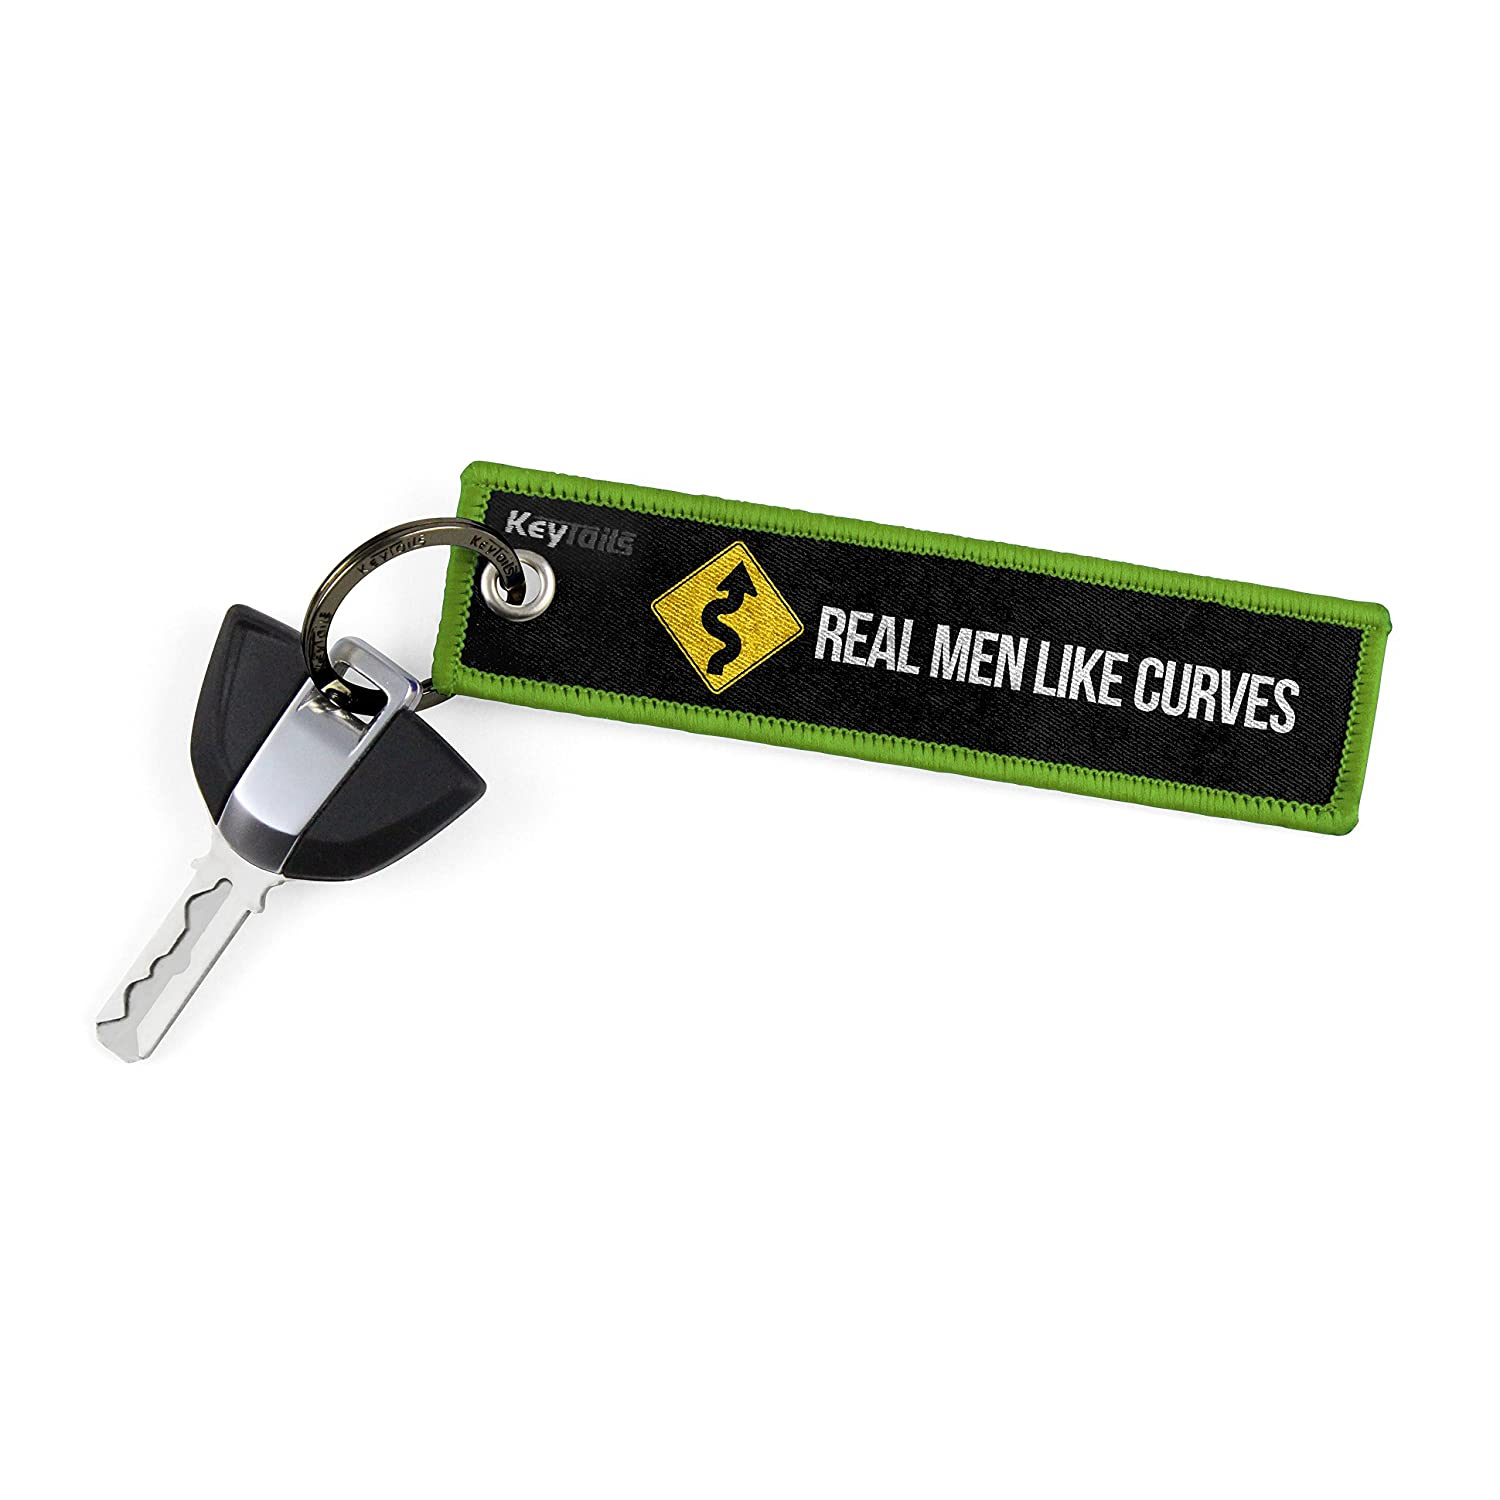 Scooter Real Men Like Curves KEYTAILS Keychains ATV UTV Car Premium Quality Key Tag for Motorcycle